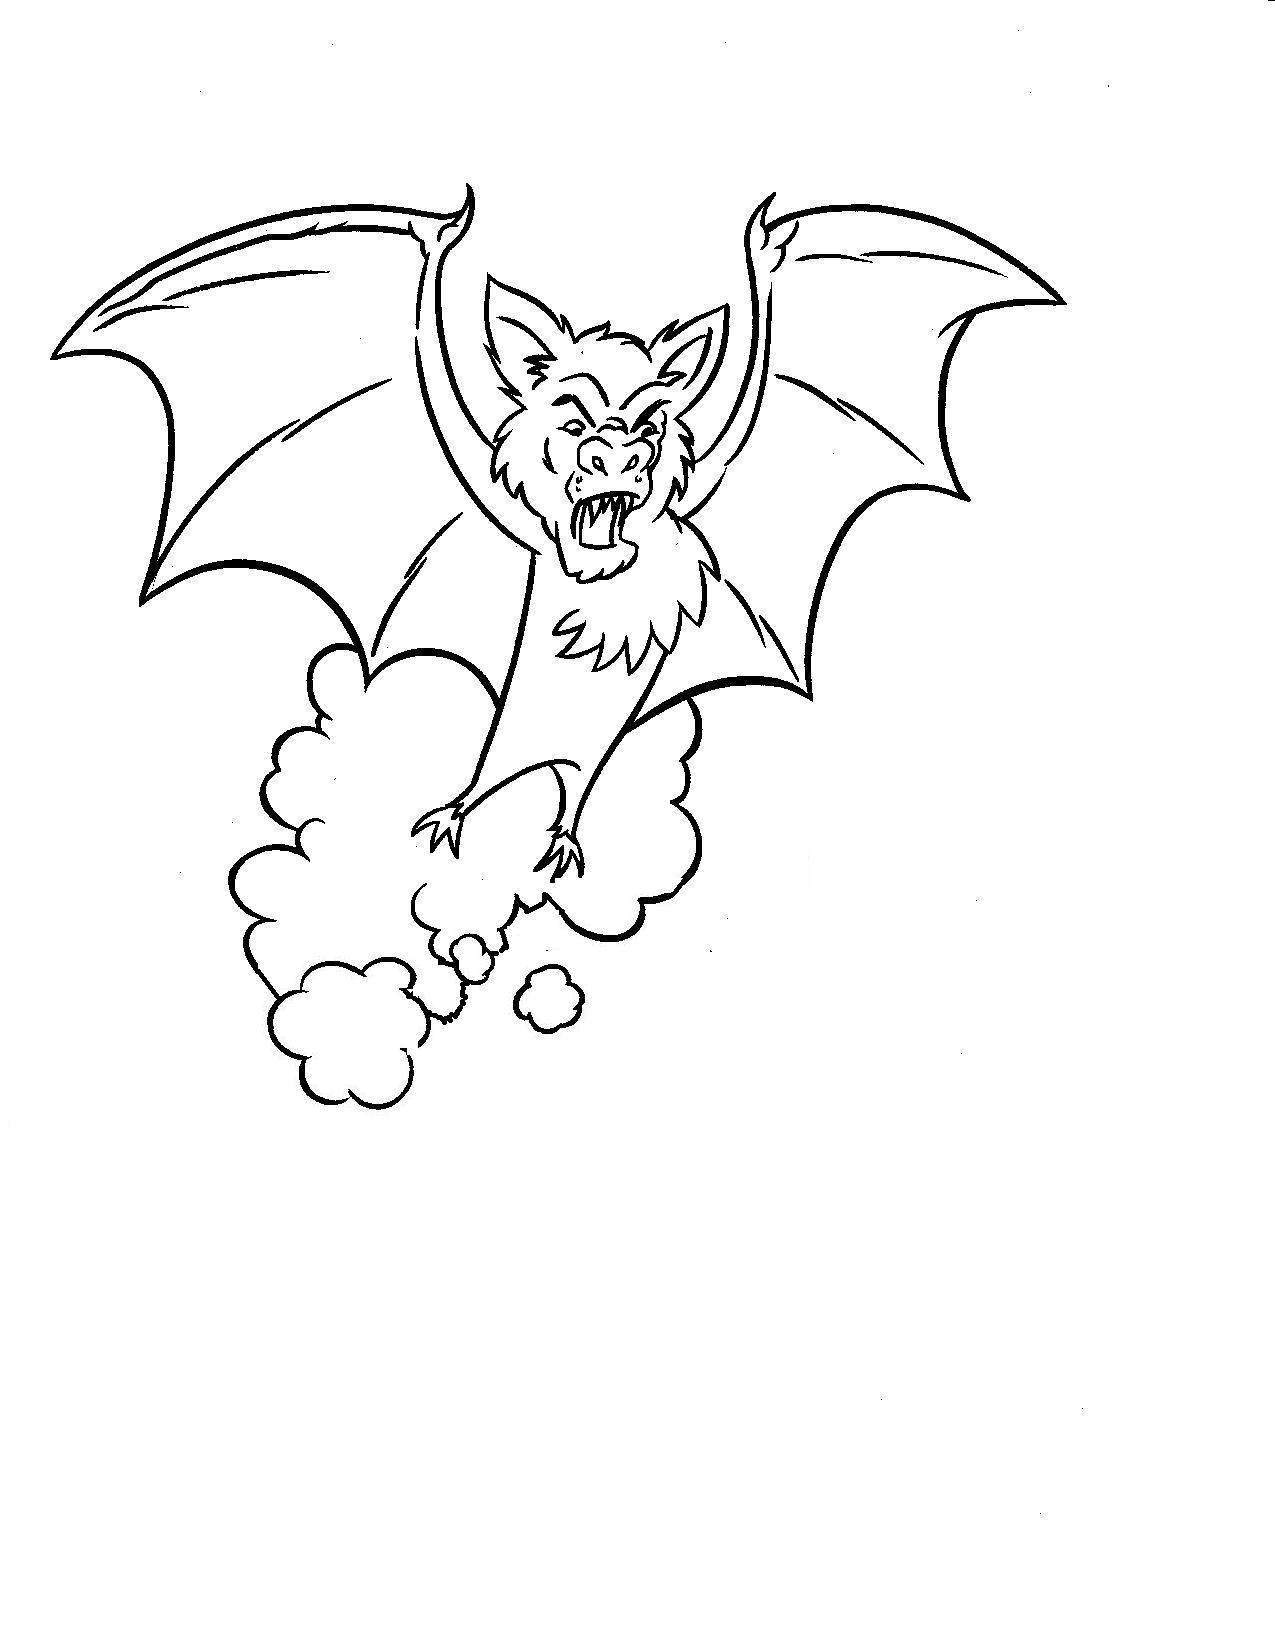 1275x1650 Awesome Fruit Bat Coloring Pages Design Printable Coloring Sheet